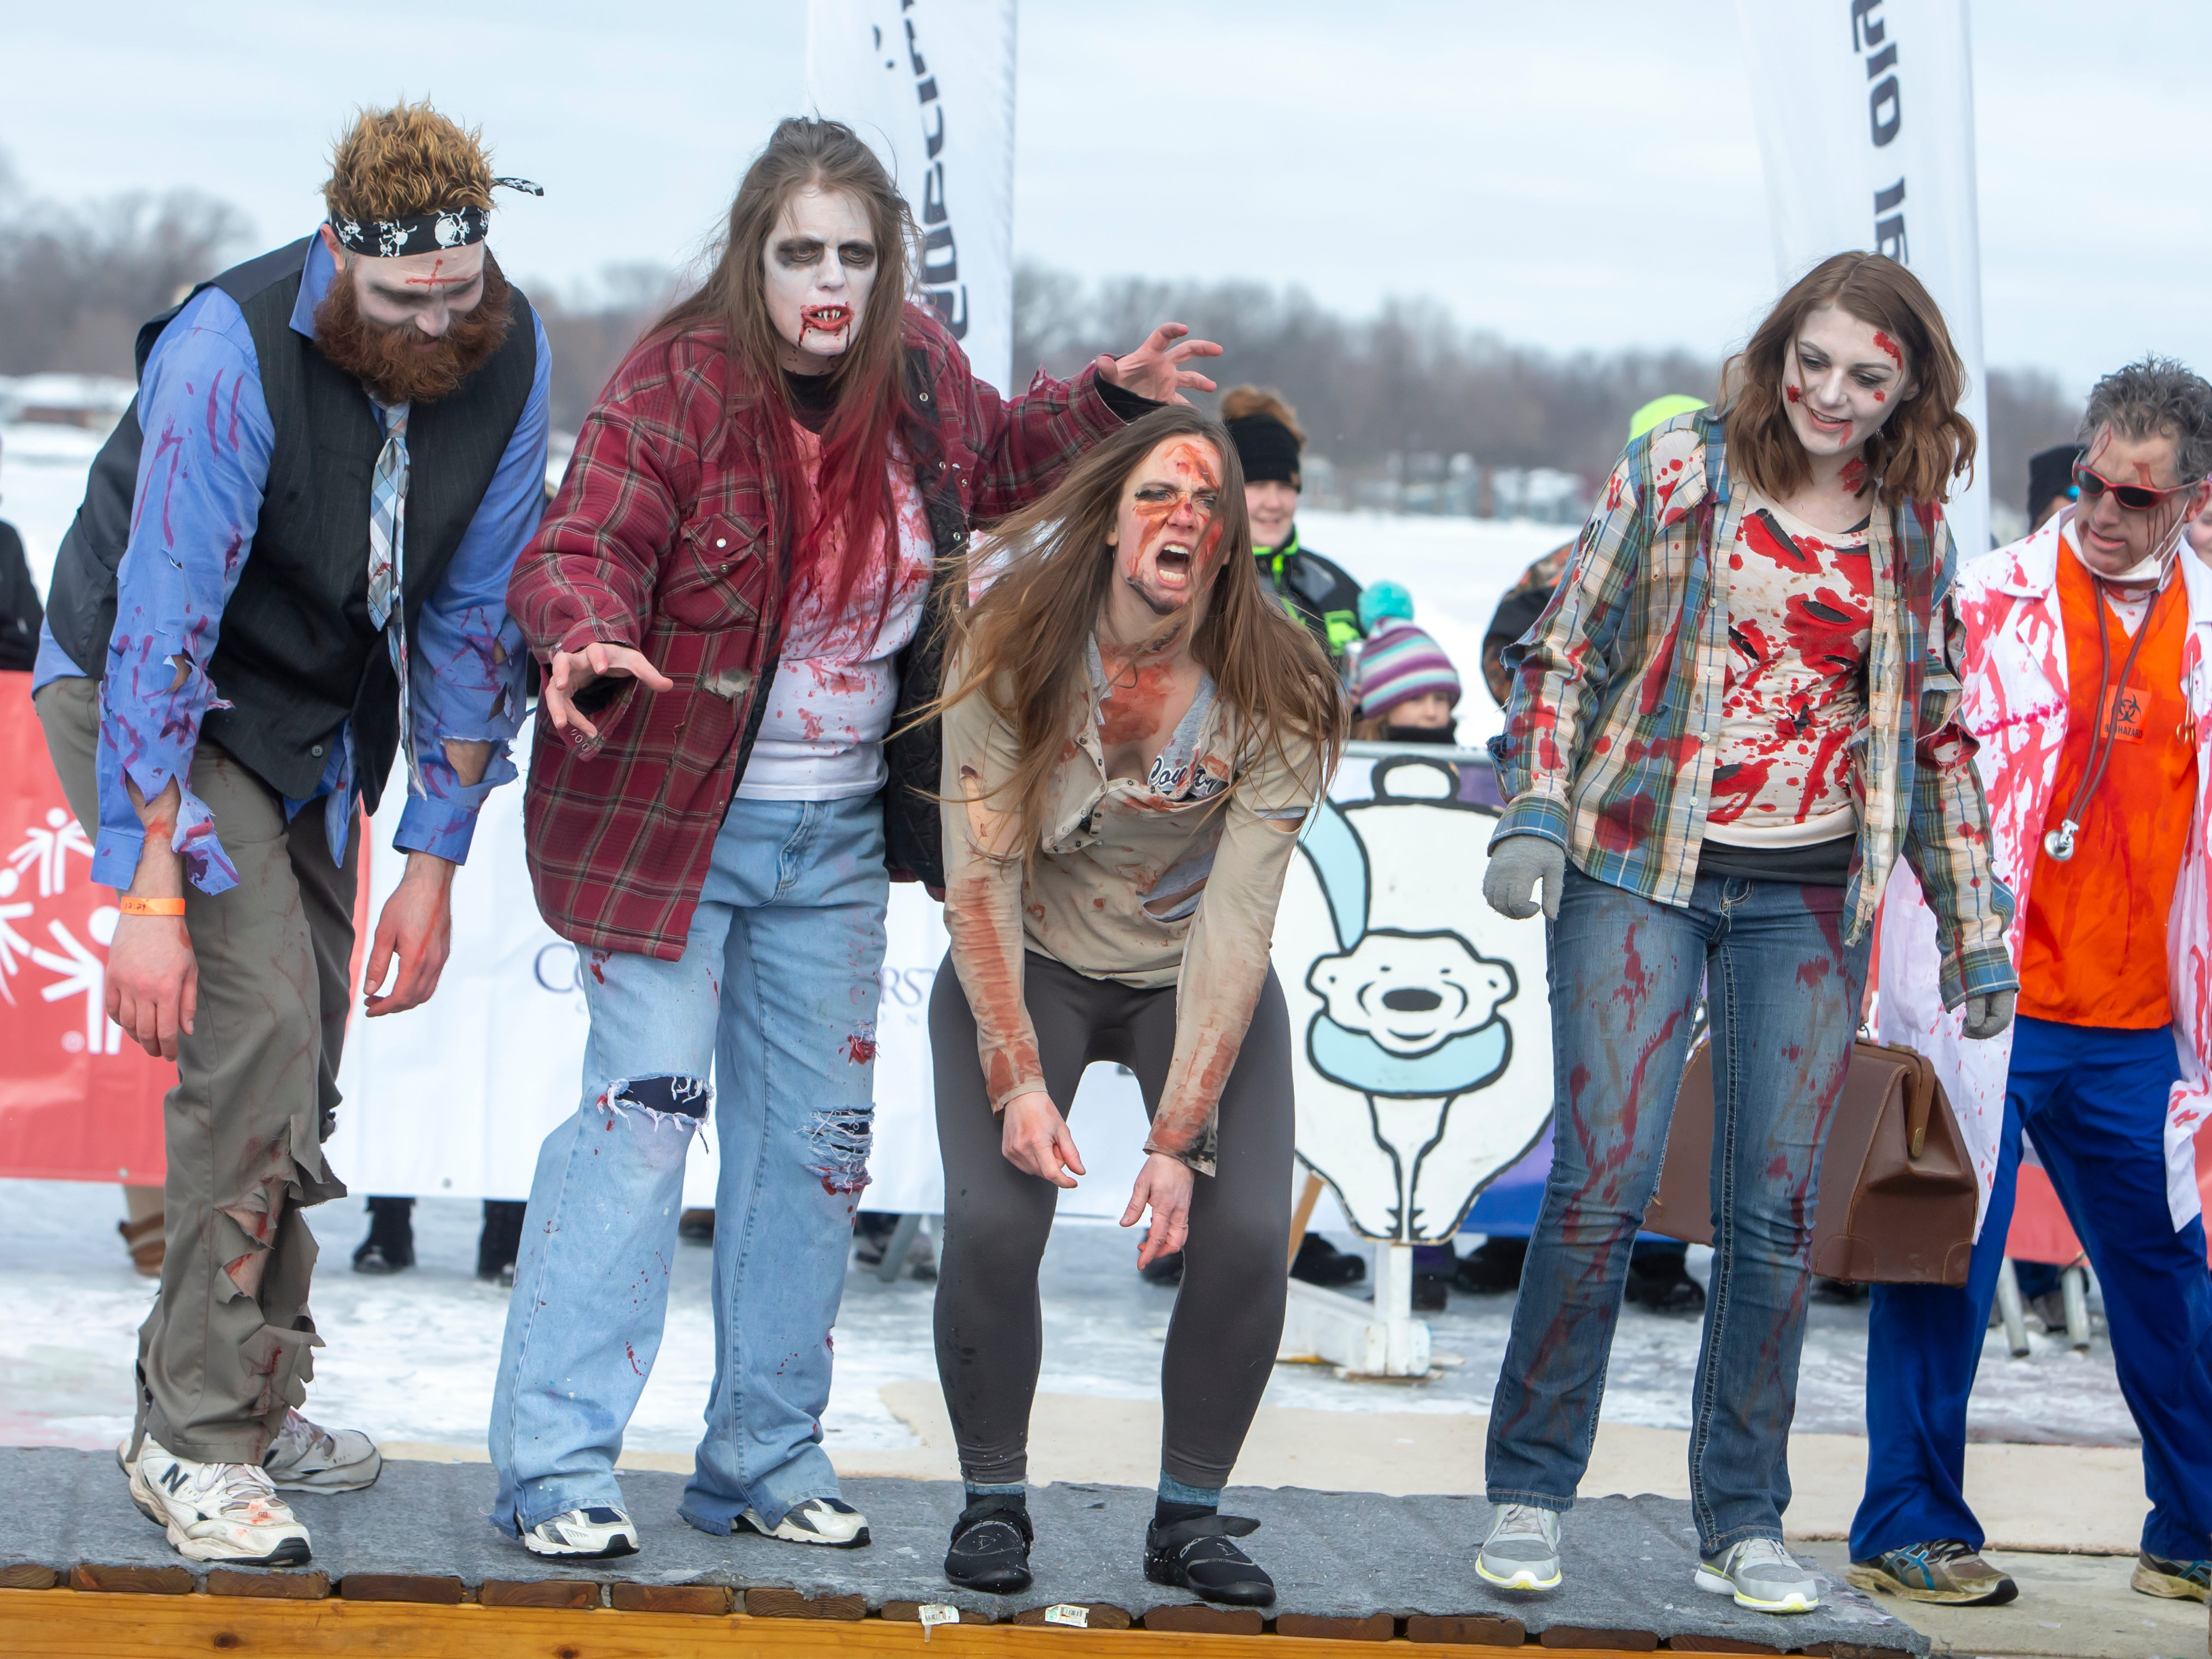 People dressed as zombies get ready to take the jump during the Special Olympics Wisconsin Polar Plunge in Oshkosh, Wis., on Saturday, February 16, 2019, at Miller's Bay in Menominee Park.